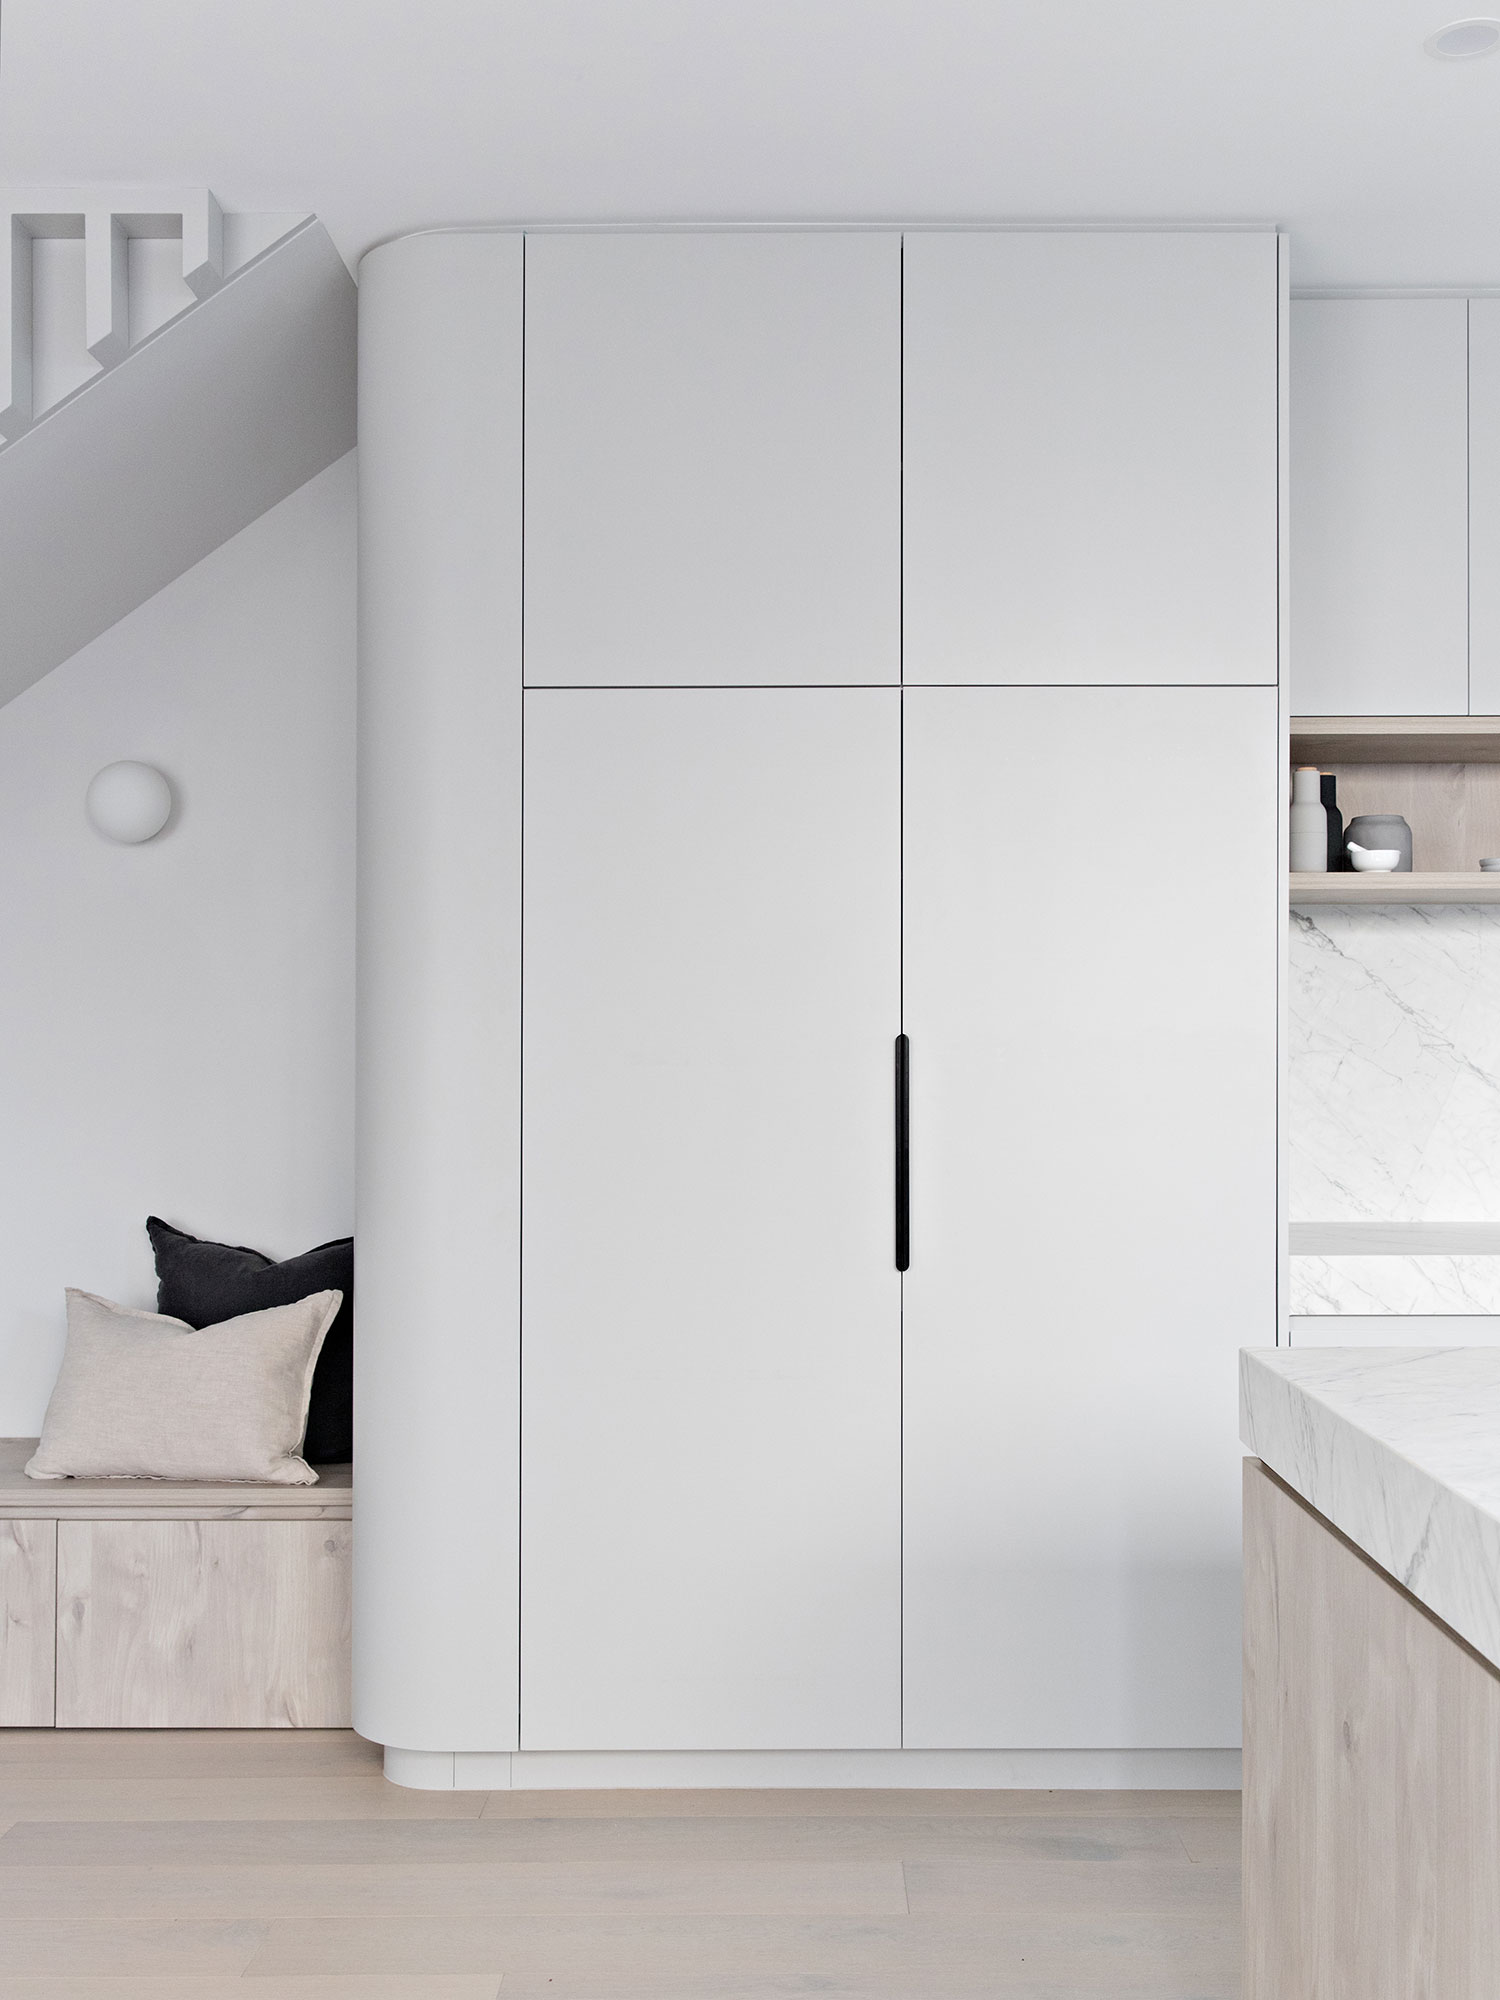 Real Estate.com.au  5 ways to create a Scandi-chic look at home